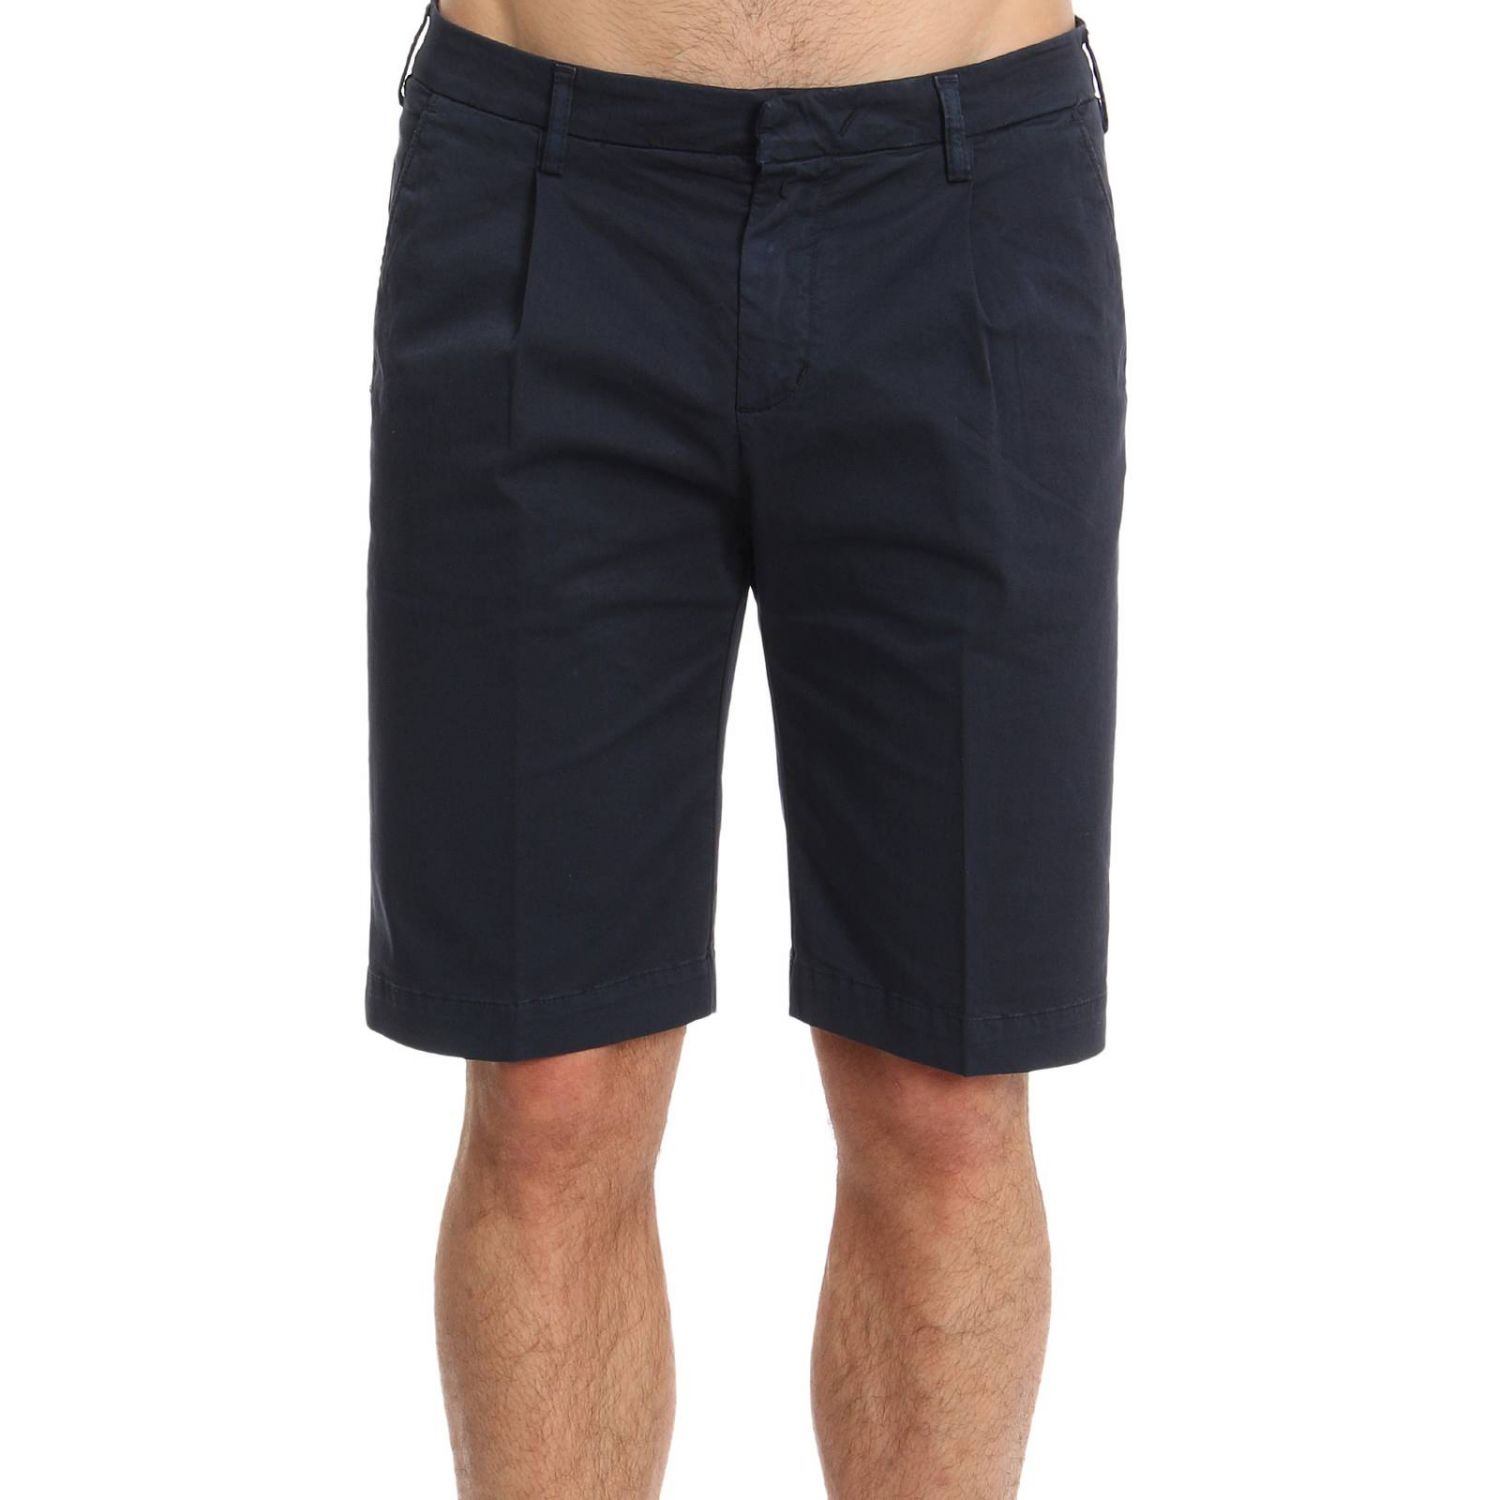 Glistening Puma For Men Dark Blue Shorts Summer Sports